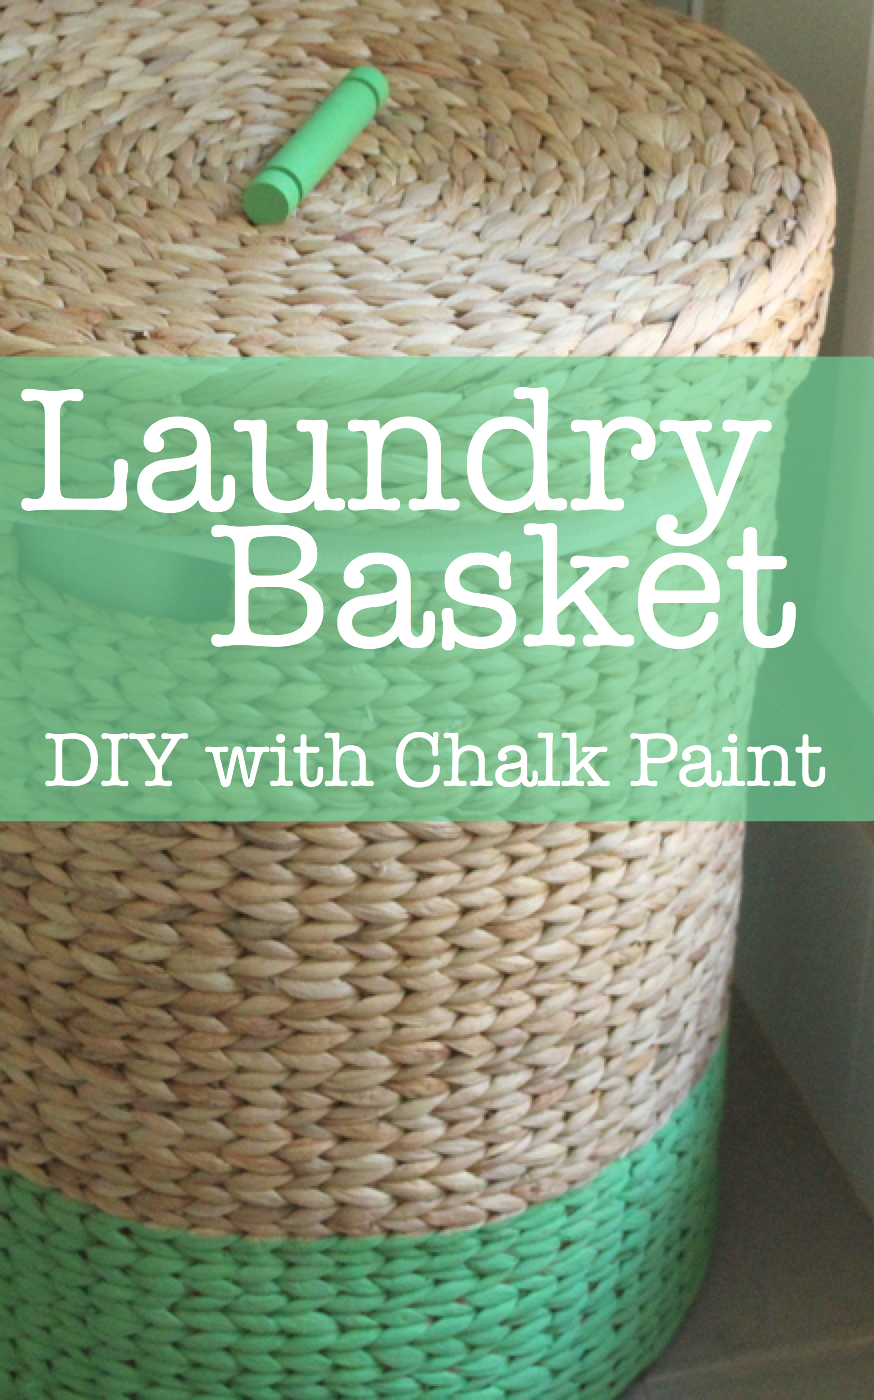 How To Paint A Basket The Crafty Mummy